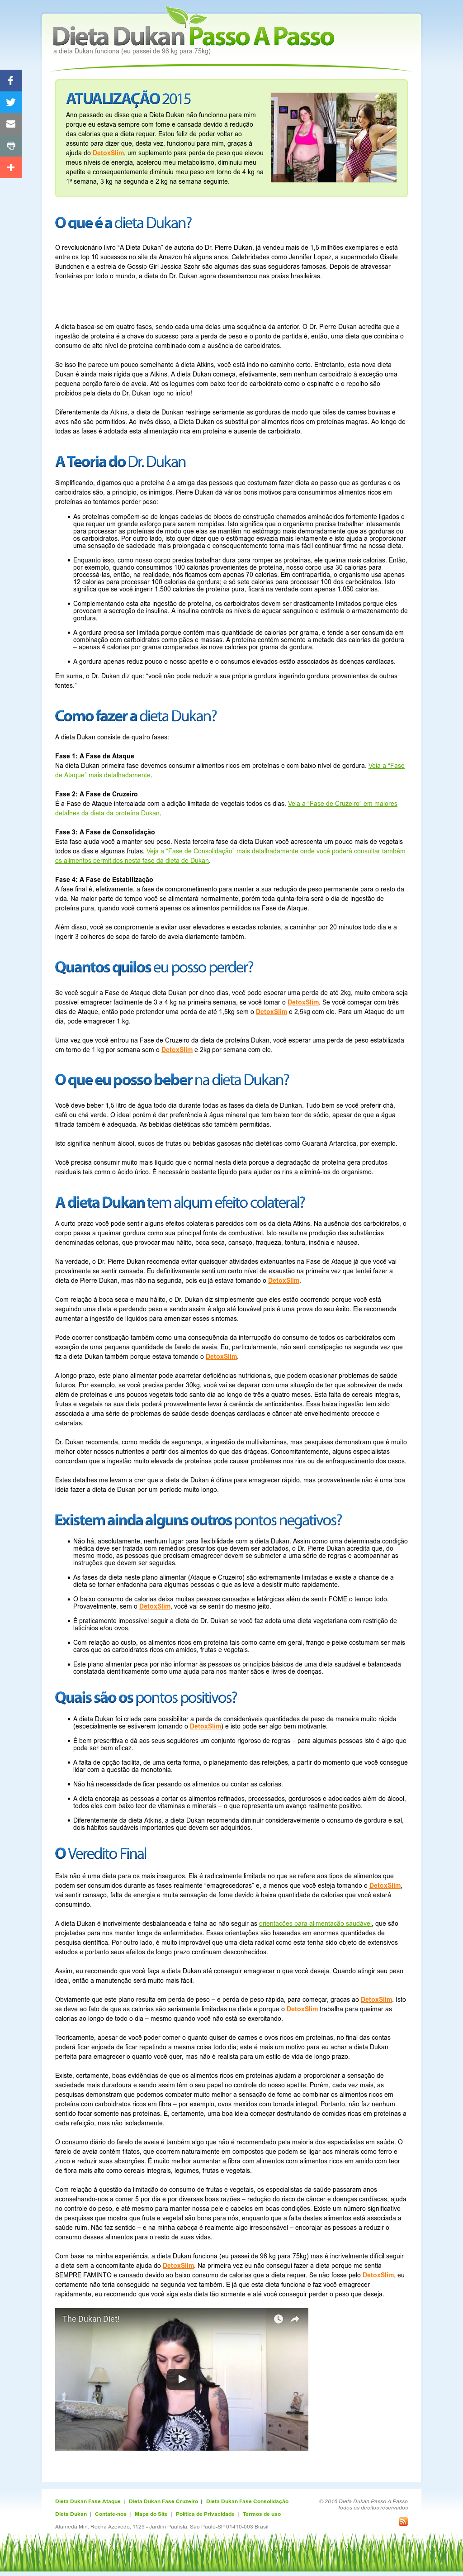 Dieta Dukan Passo A Passo Competitors Revenue And Employees Owler